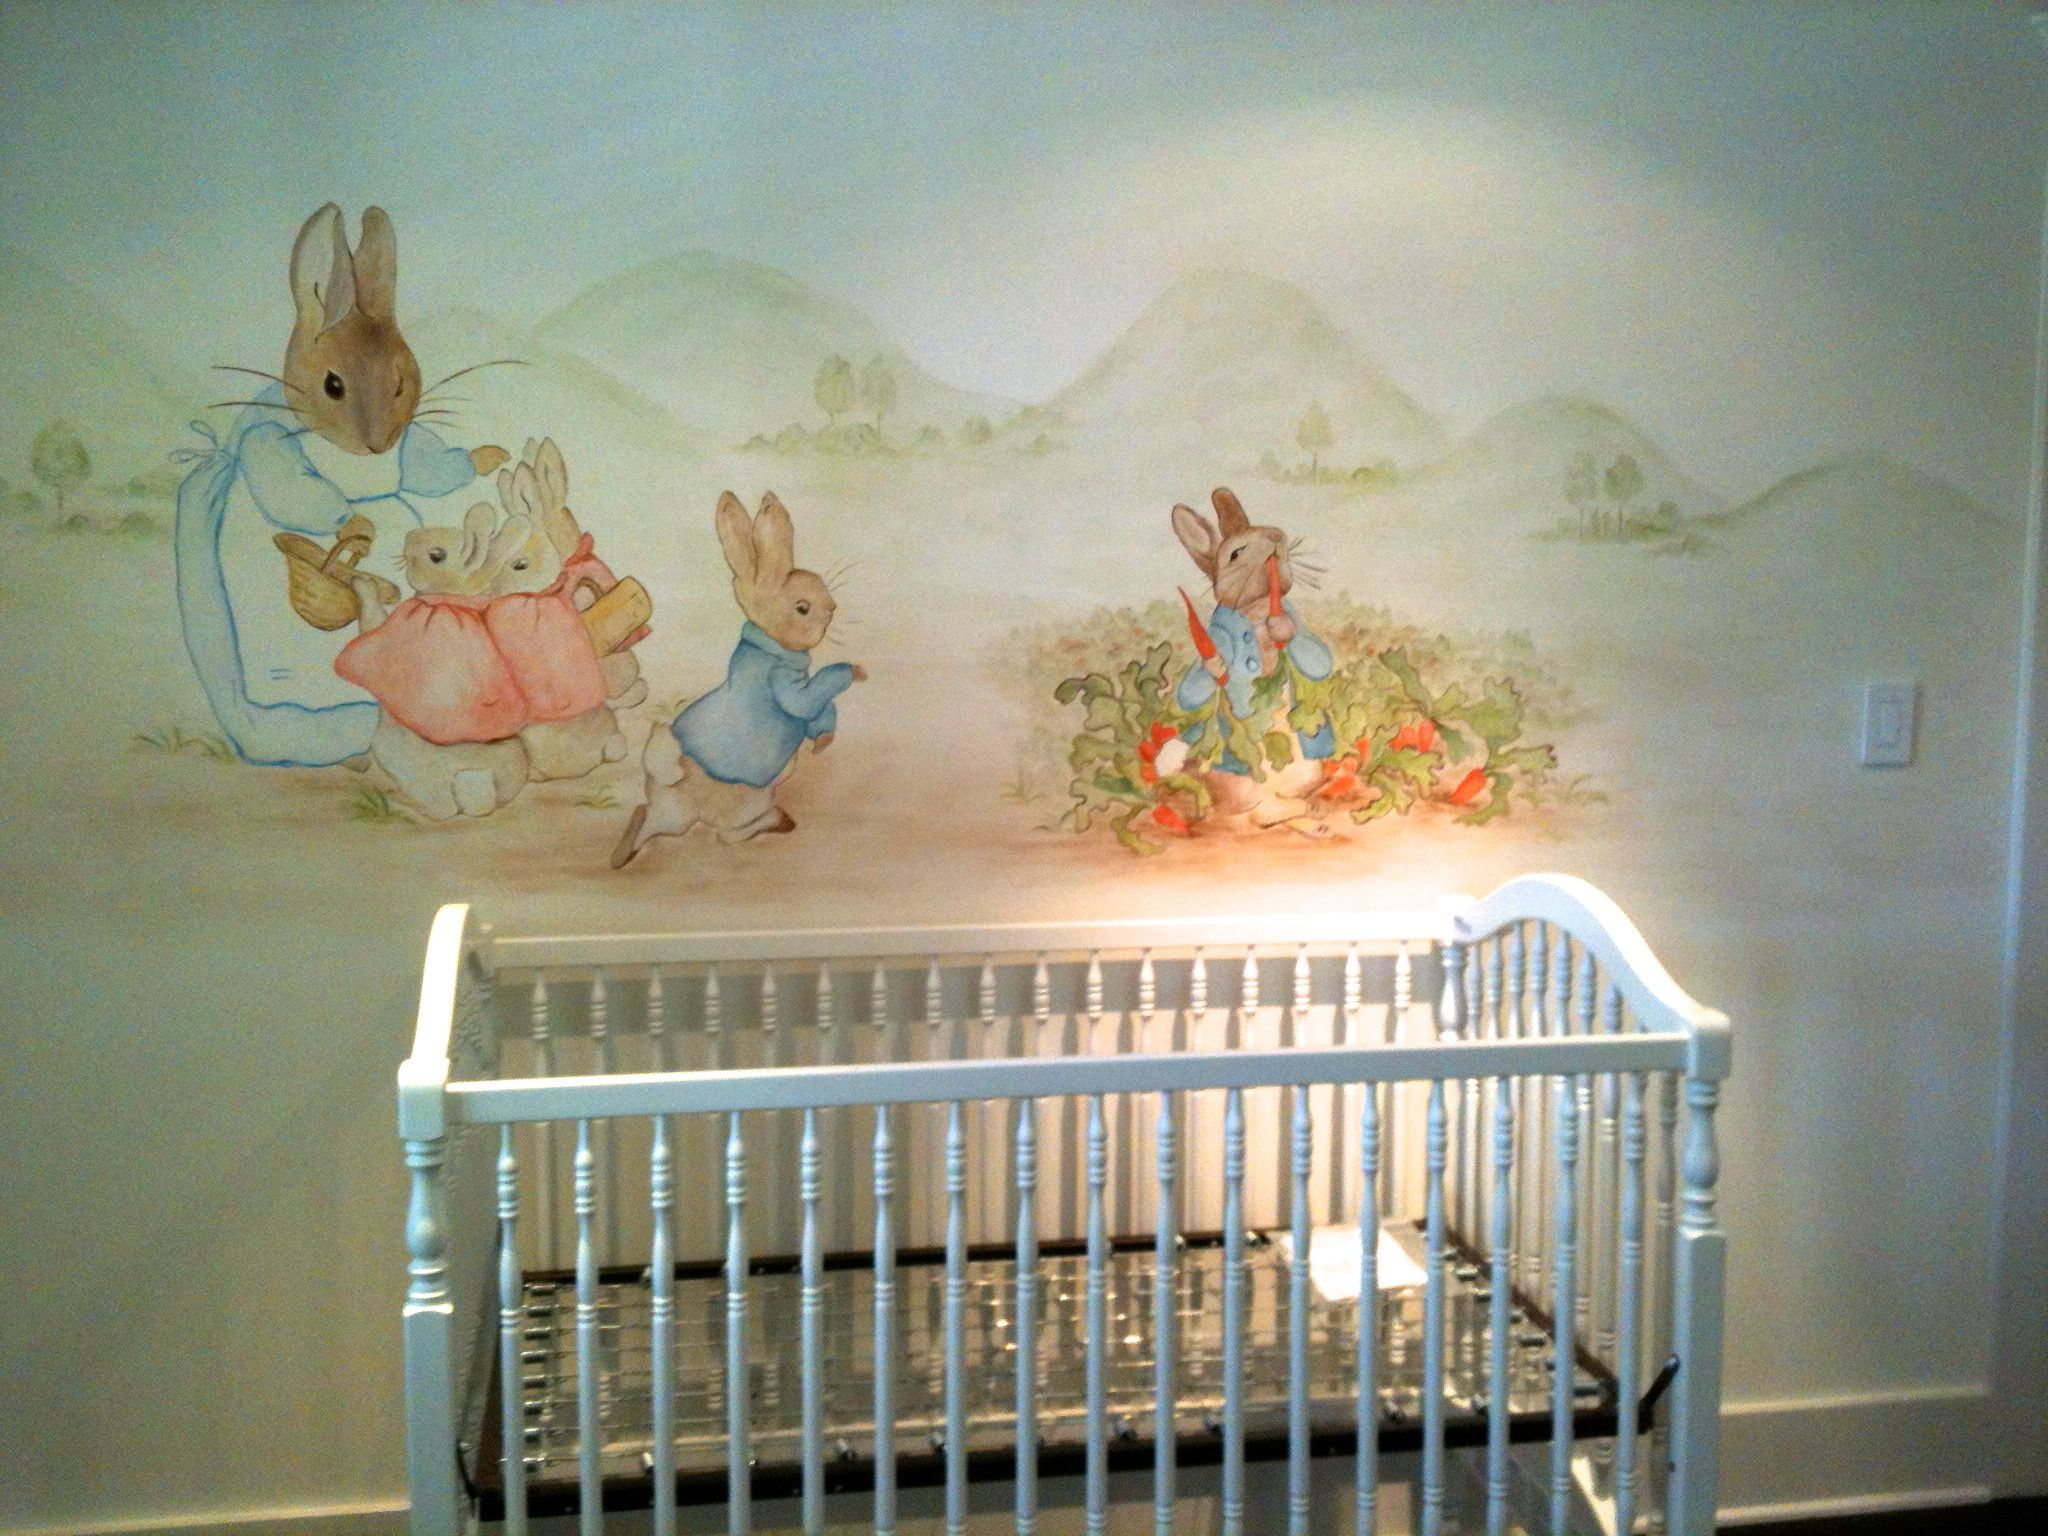 Nursery Mural After The Book Peter Rabbit Childrens Room